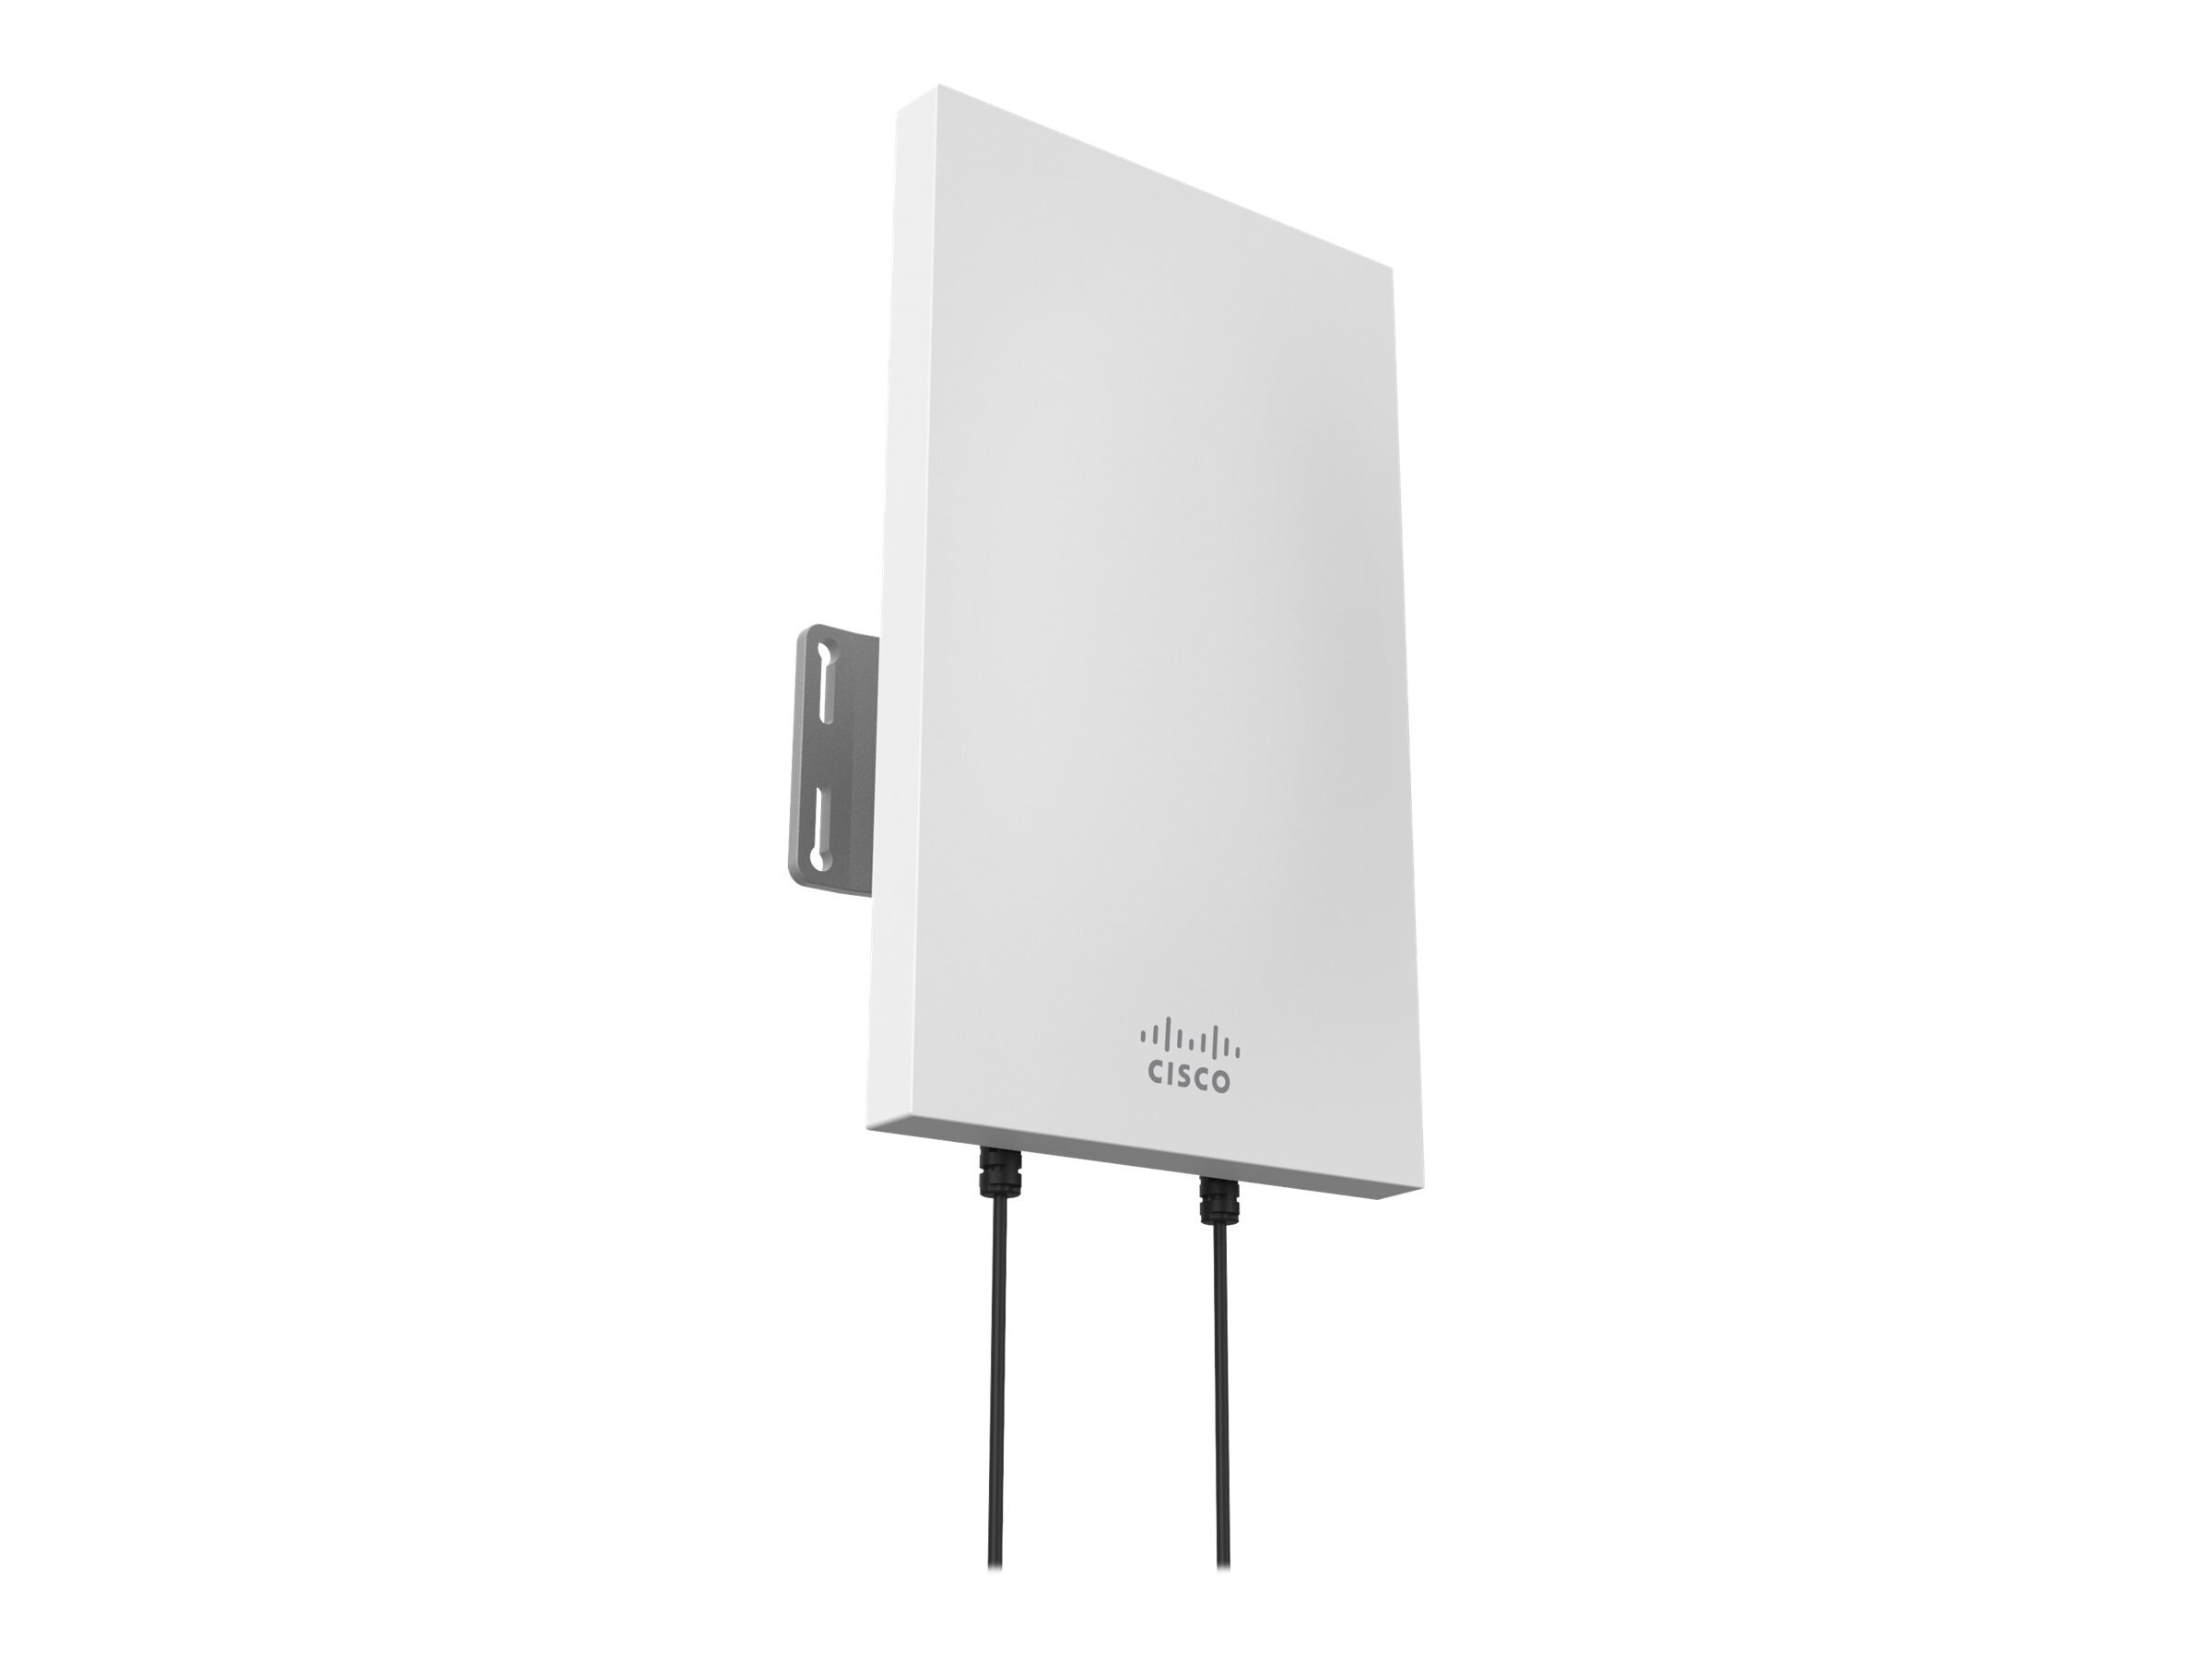 Cisco Meraki 5GHz Sector Antenna